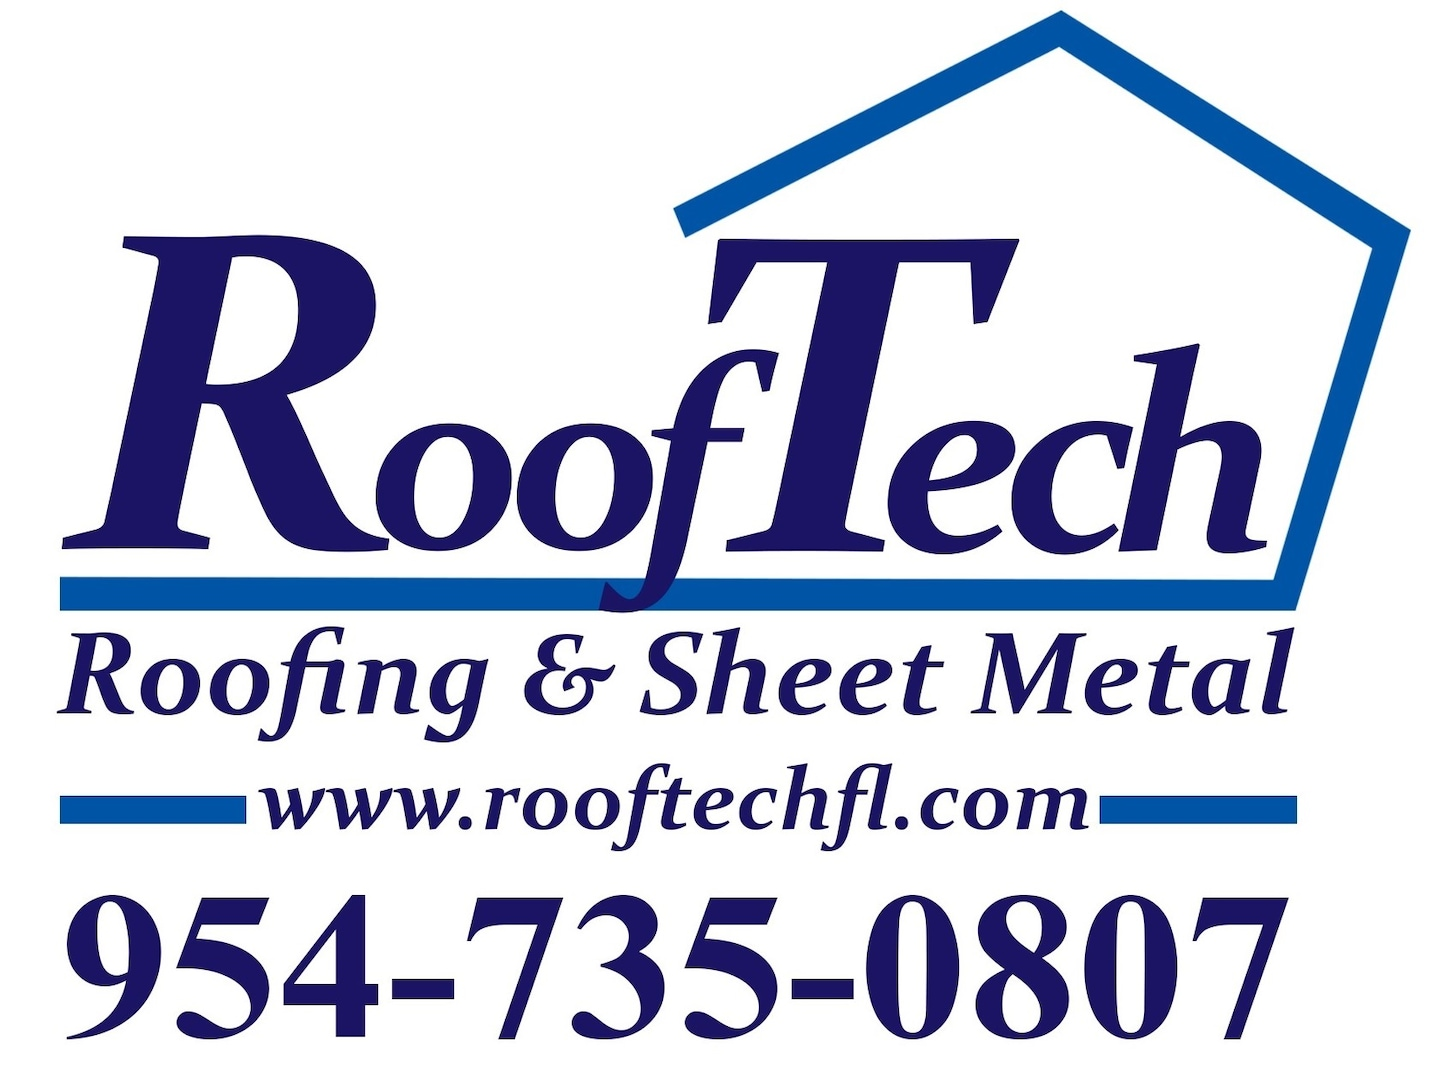 RoofTech Roofing & Sheet Metal